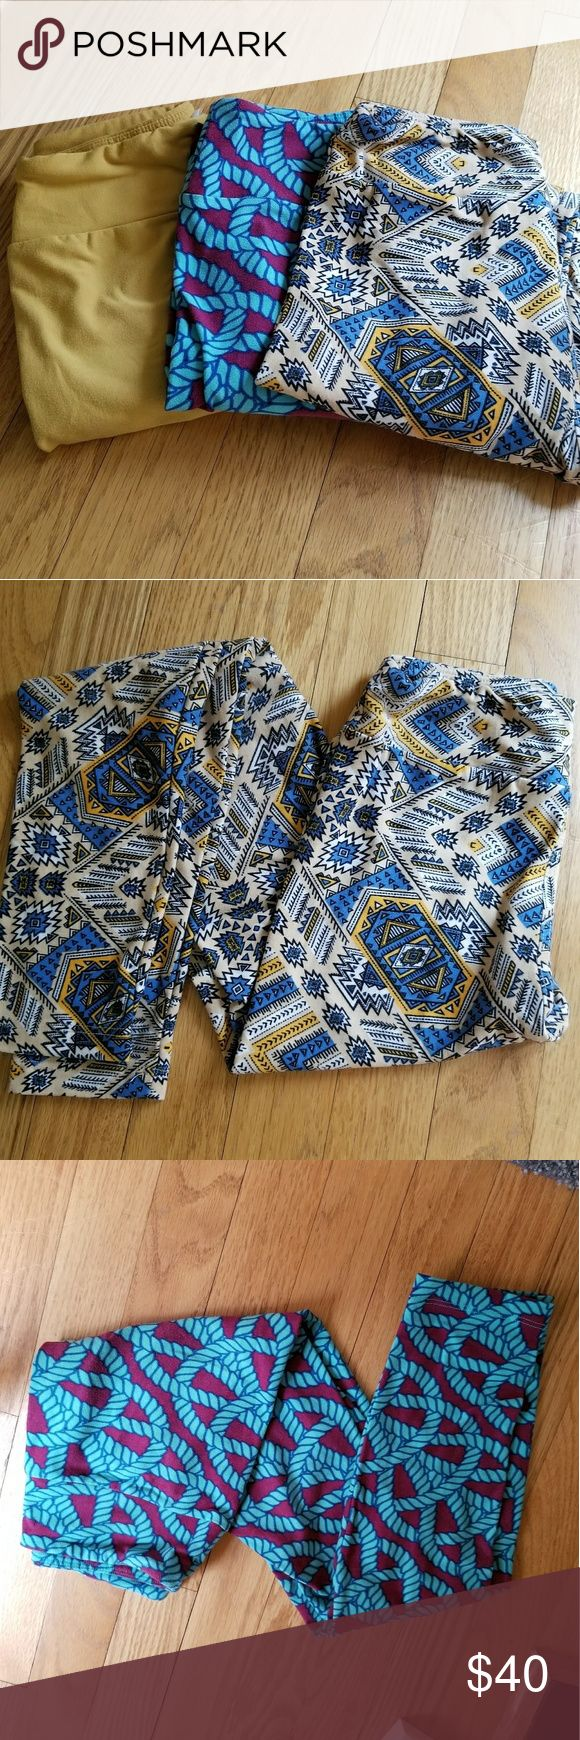 Lularoe tween leggings These are all worn tween leggings. Mustard and Aztec print leggings have been worn 1 time and are in perfect condition. Rope leggings have been worn a few times and have wear on the knees as shown in the photo. Price is for all 3. LuLaRoe Pants Leggings